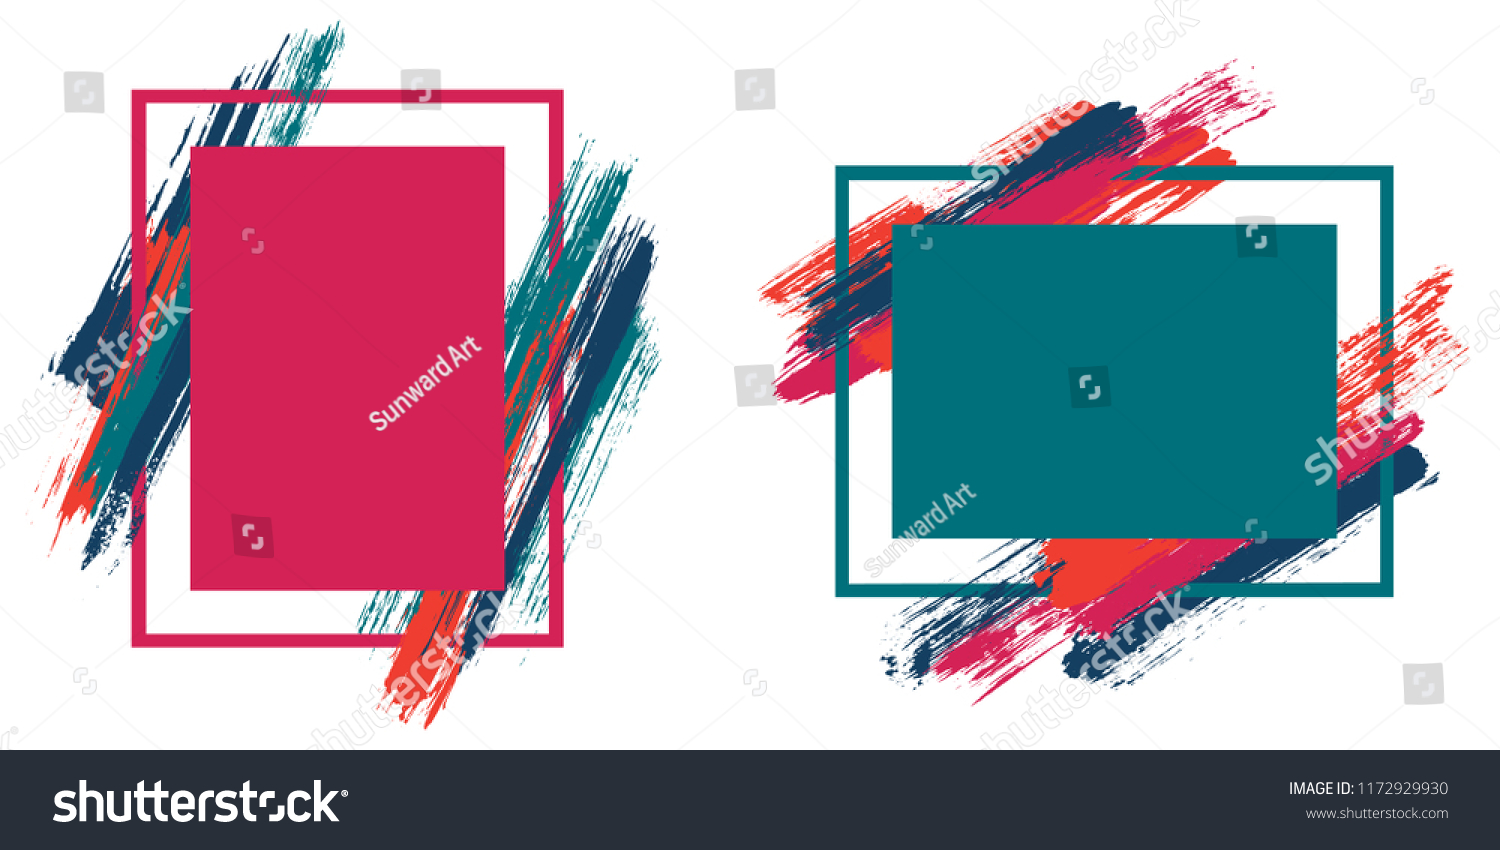 1ad3064fc09 Cool frames with paint brush strokes vector collection. Box borders with  painted brushstrokes backgrounds.